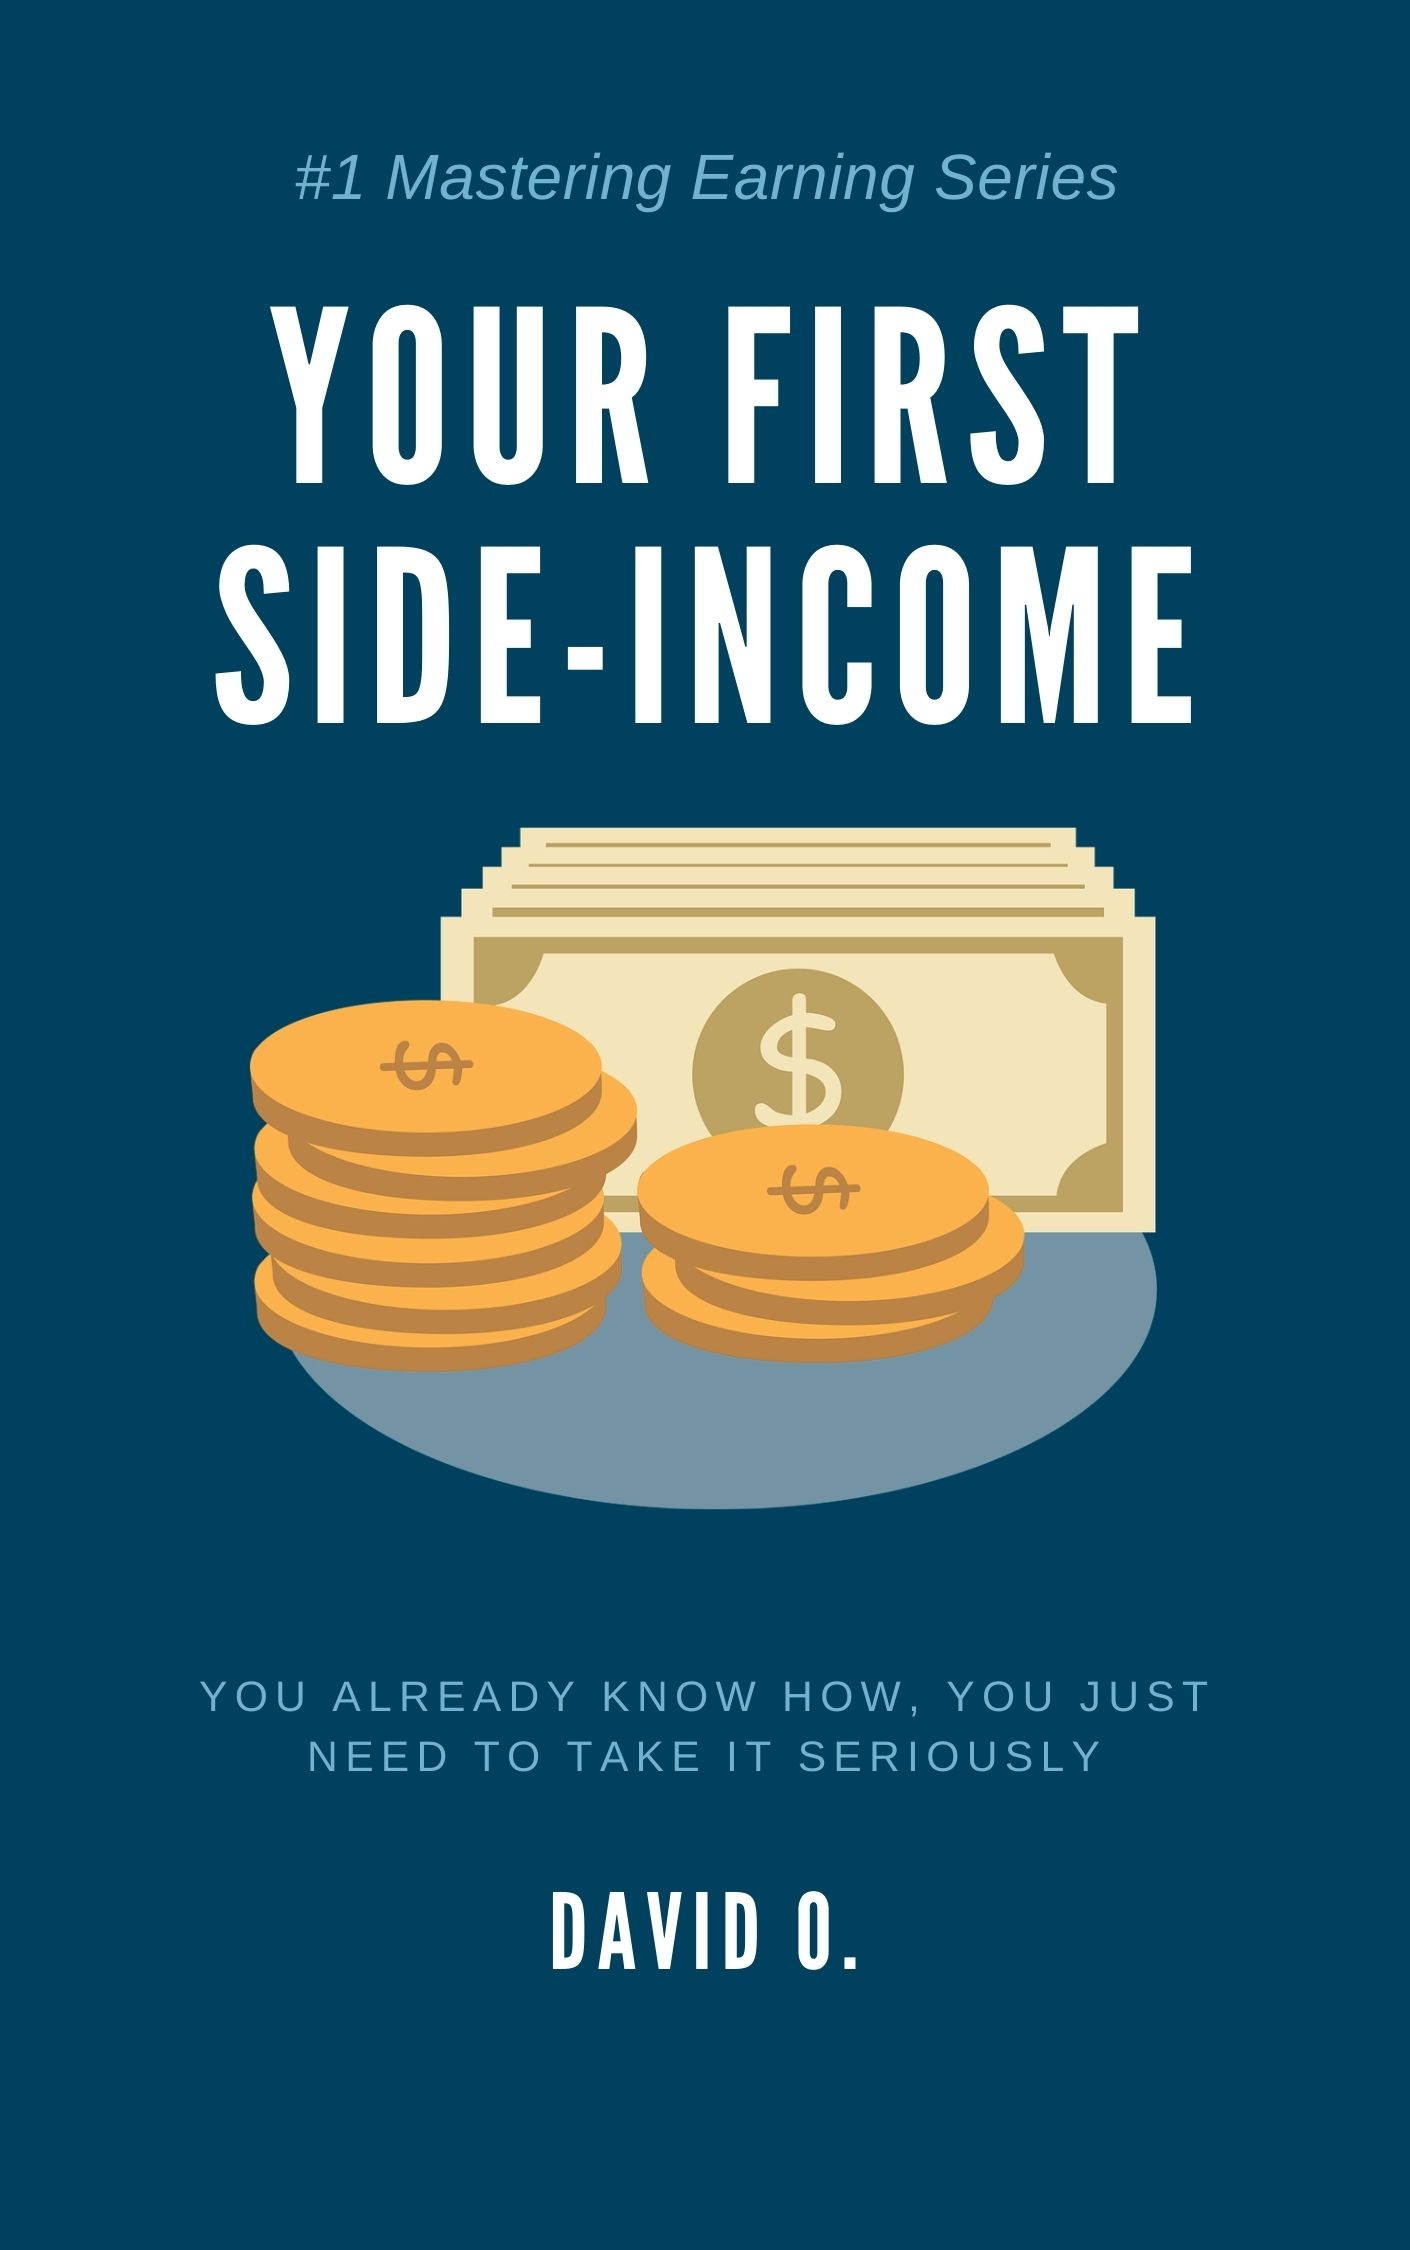 Your first side-income